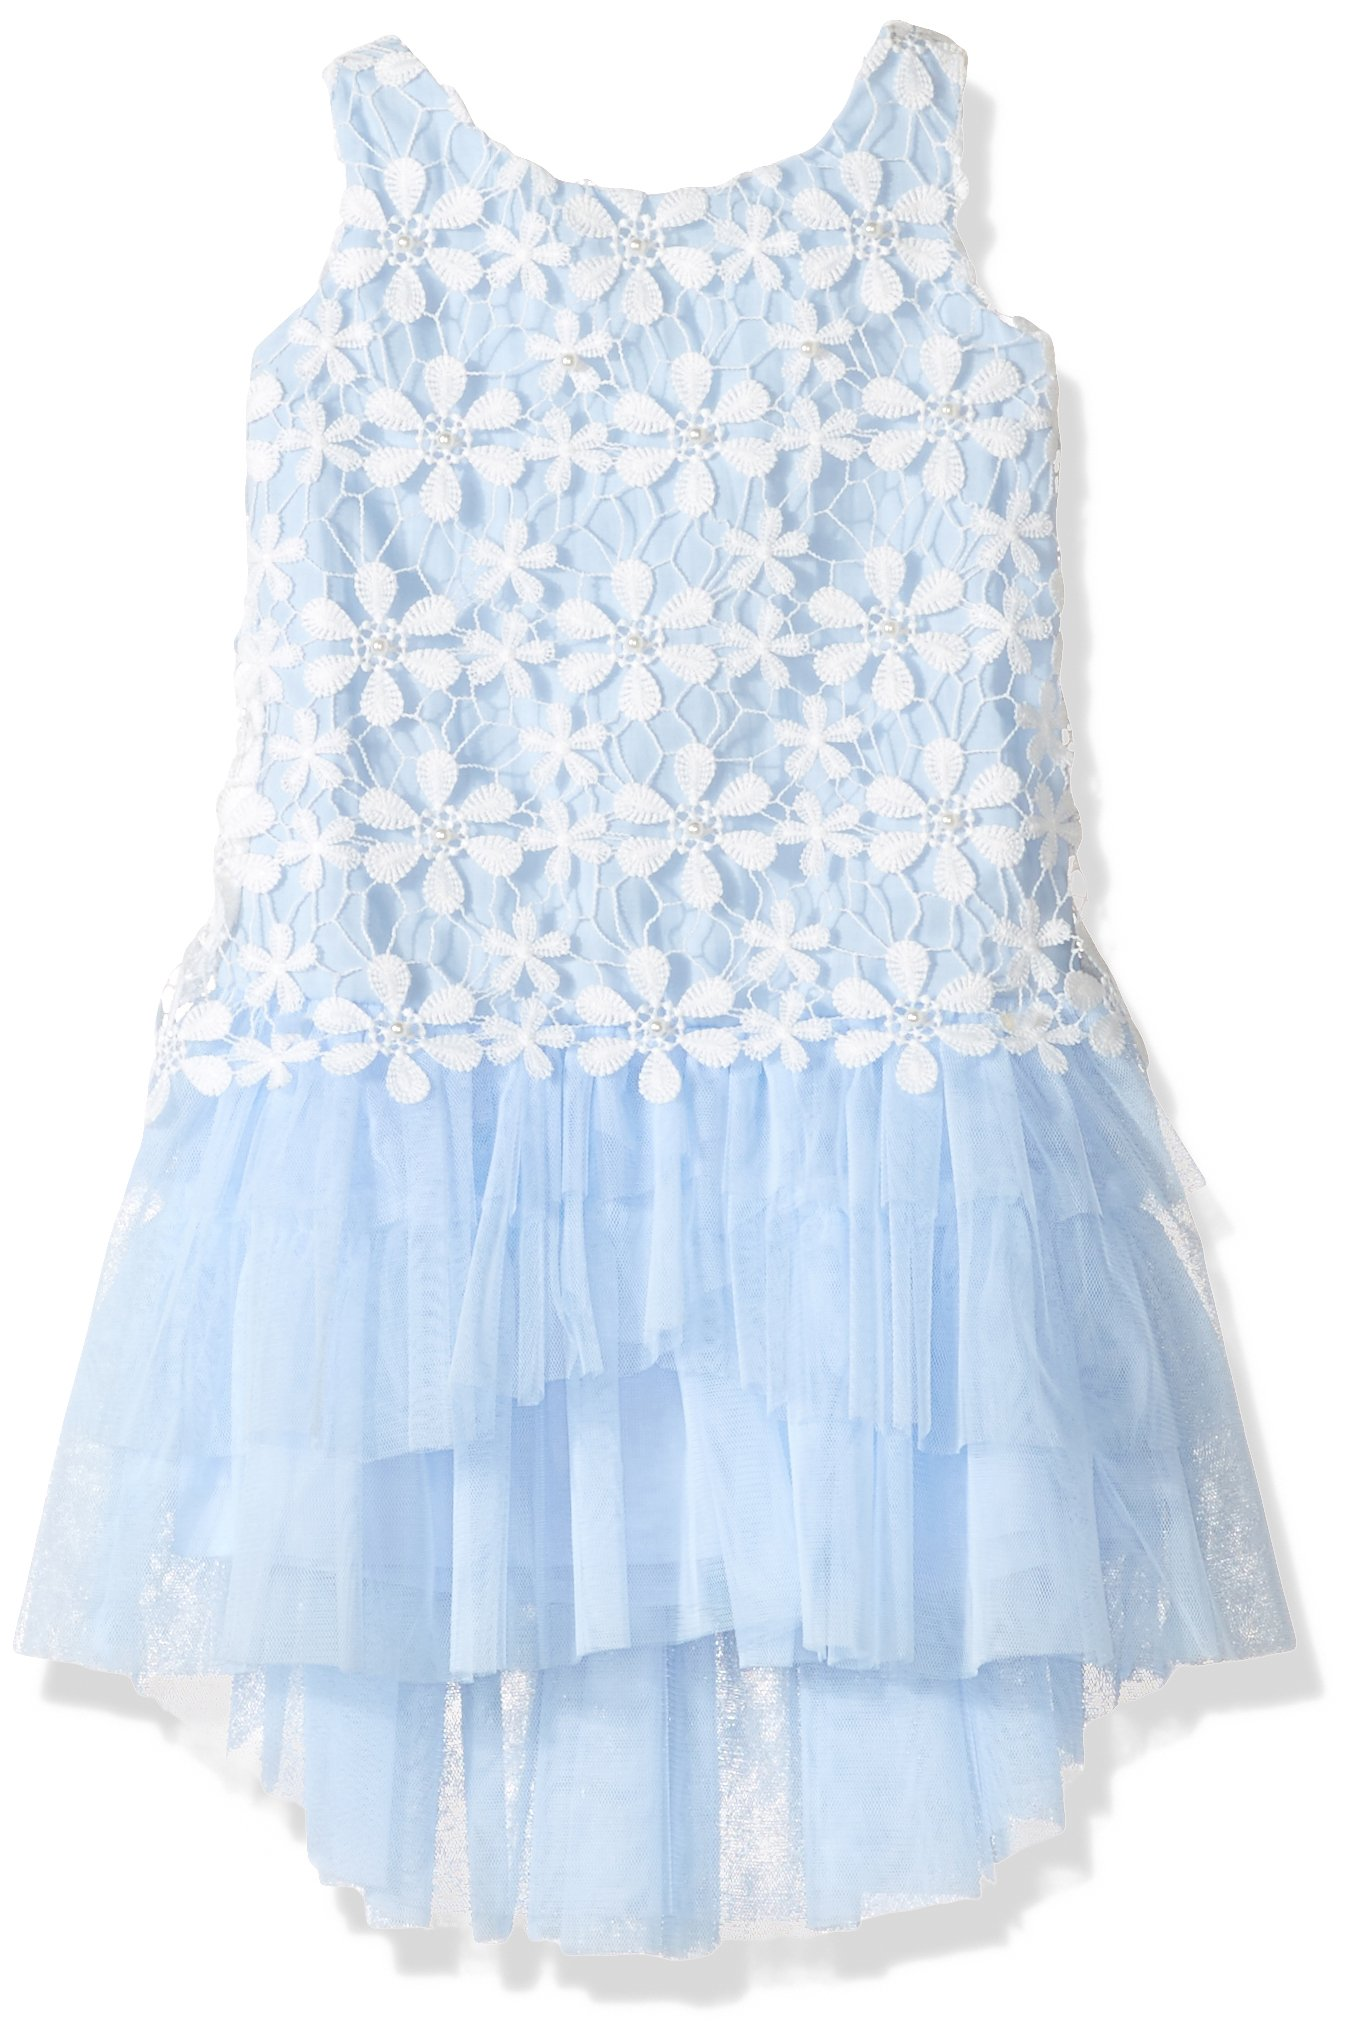 Biscotti Big Girls Pick A Posy Dress With Embroidered Bodice, Ivory/Blue, 7